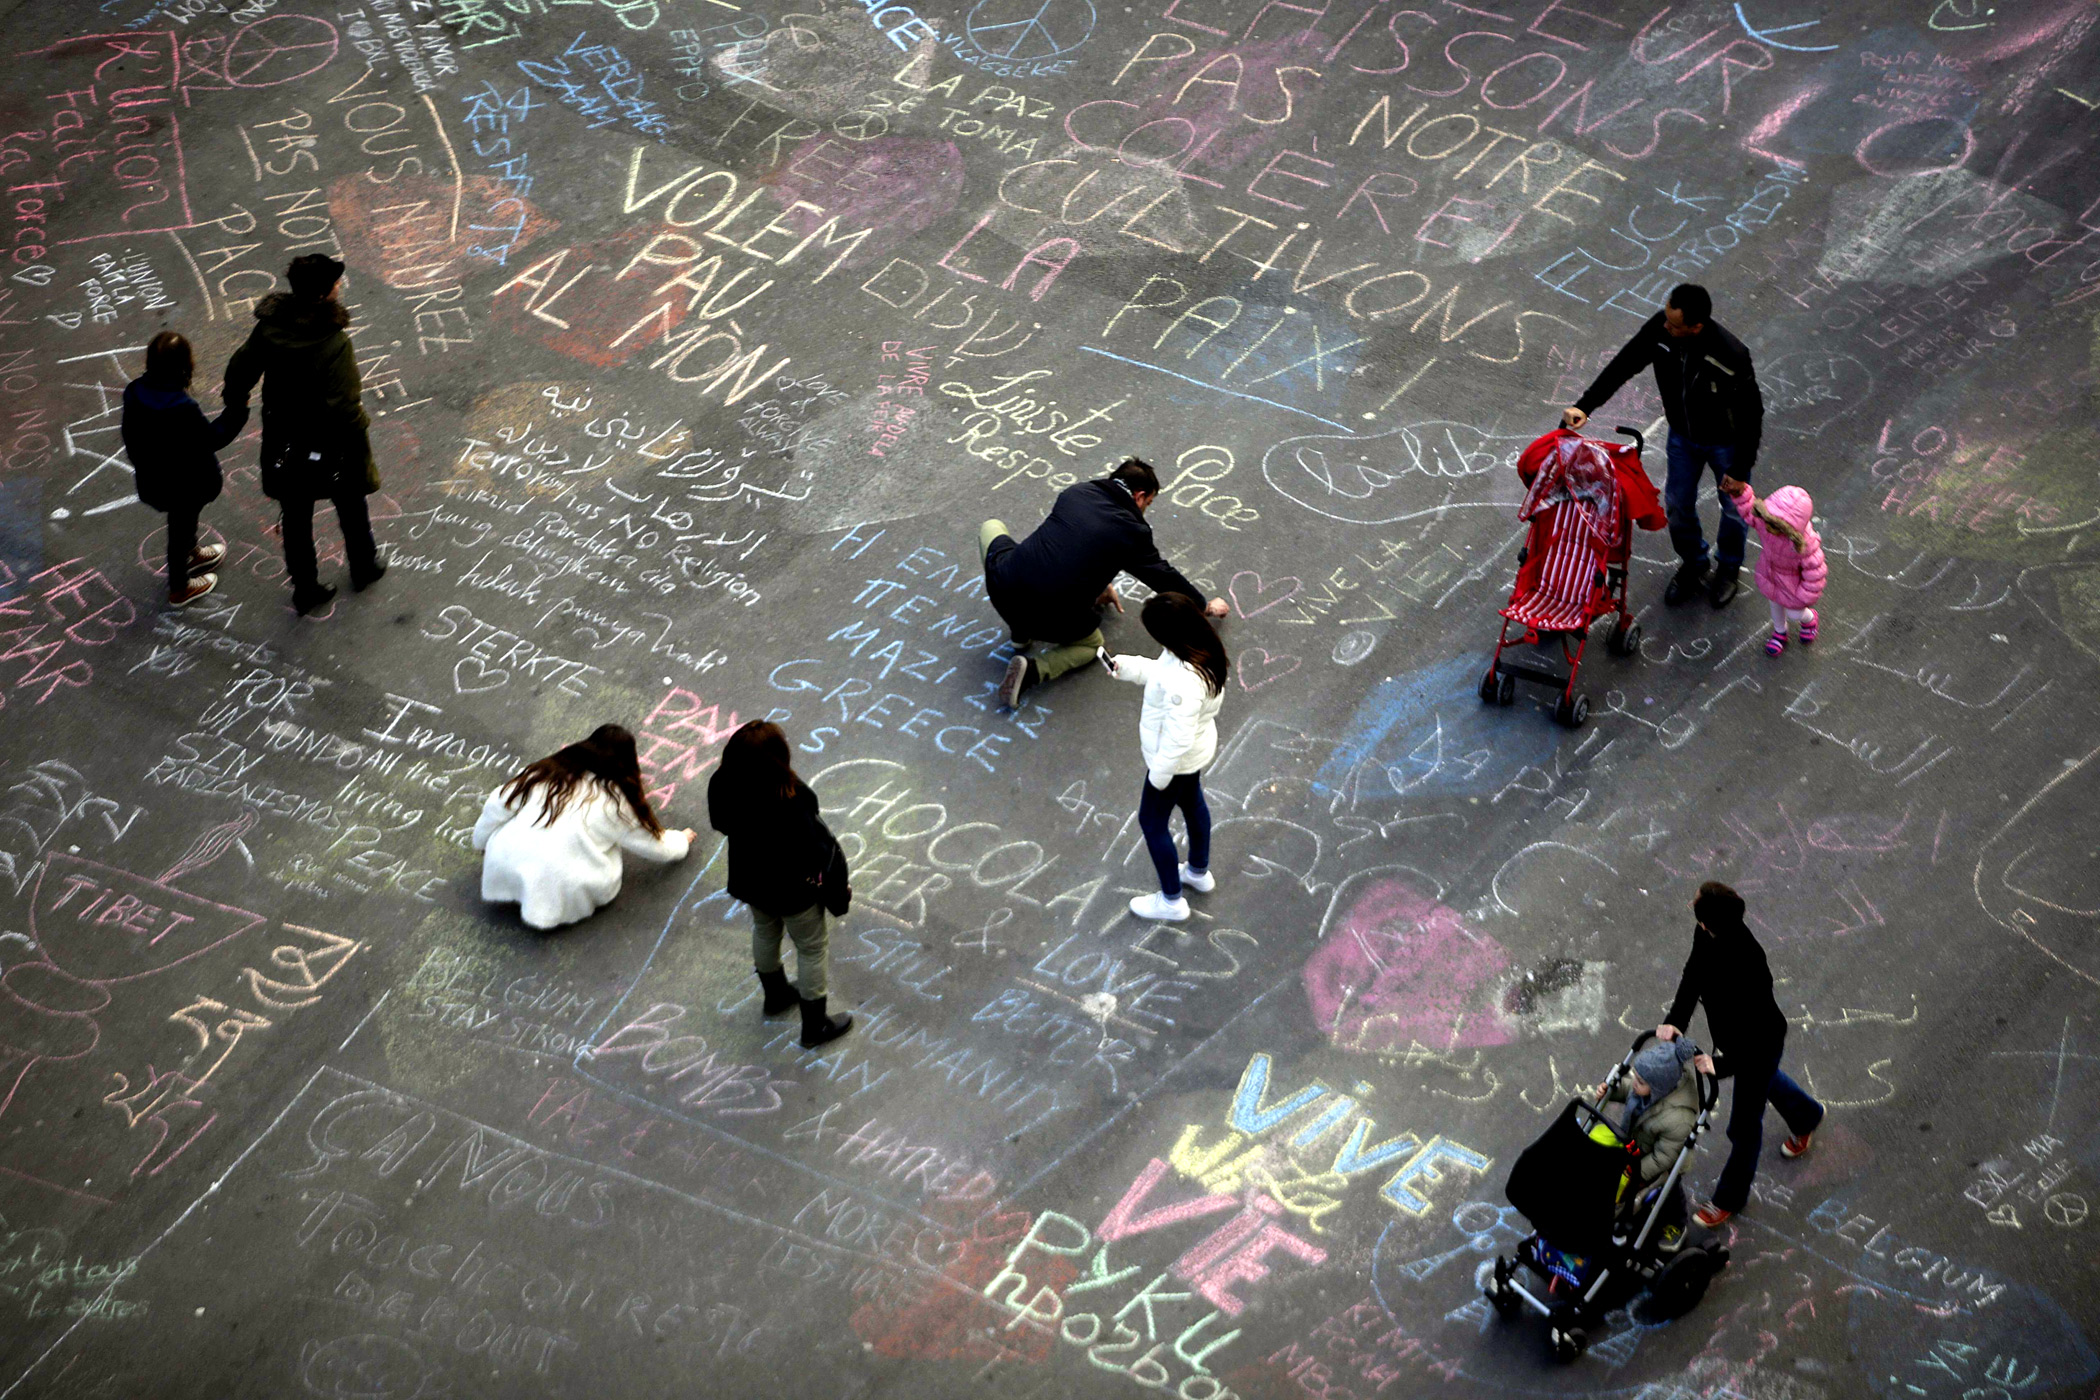 People write messages in chalk at Place de la Bourse following attacks in Brussels, Belgium, March 22, 2016.